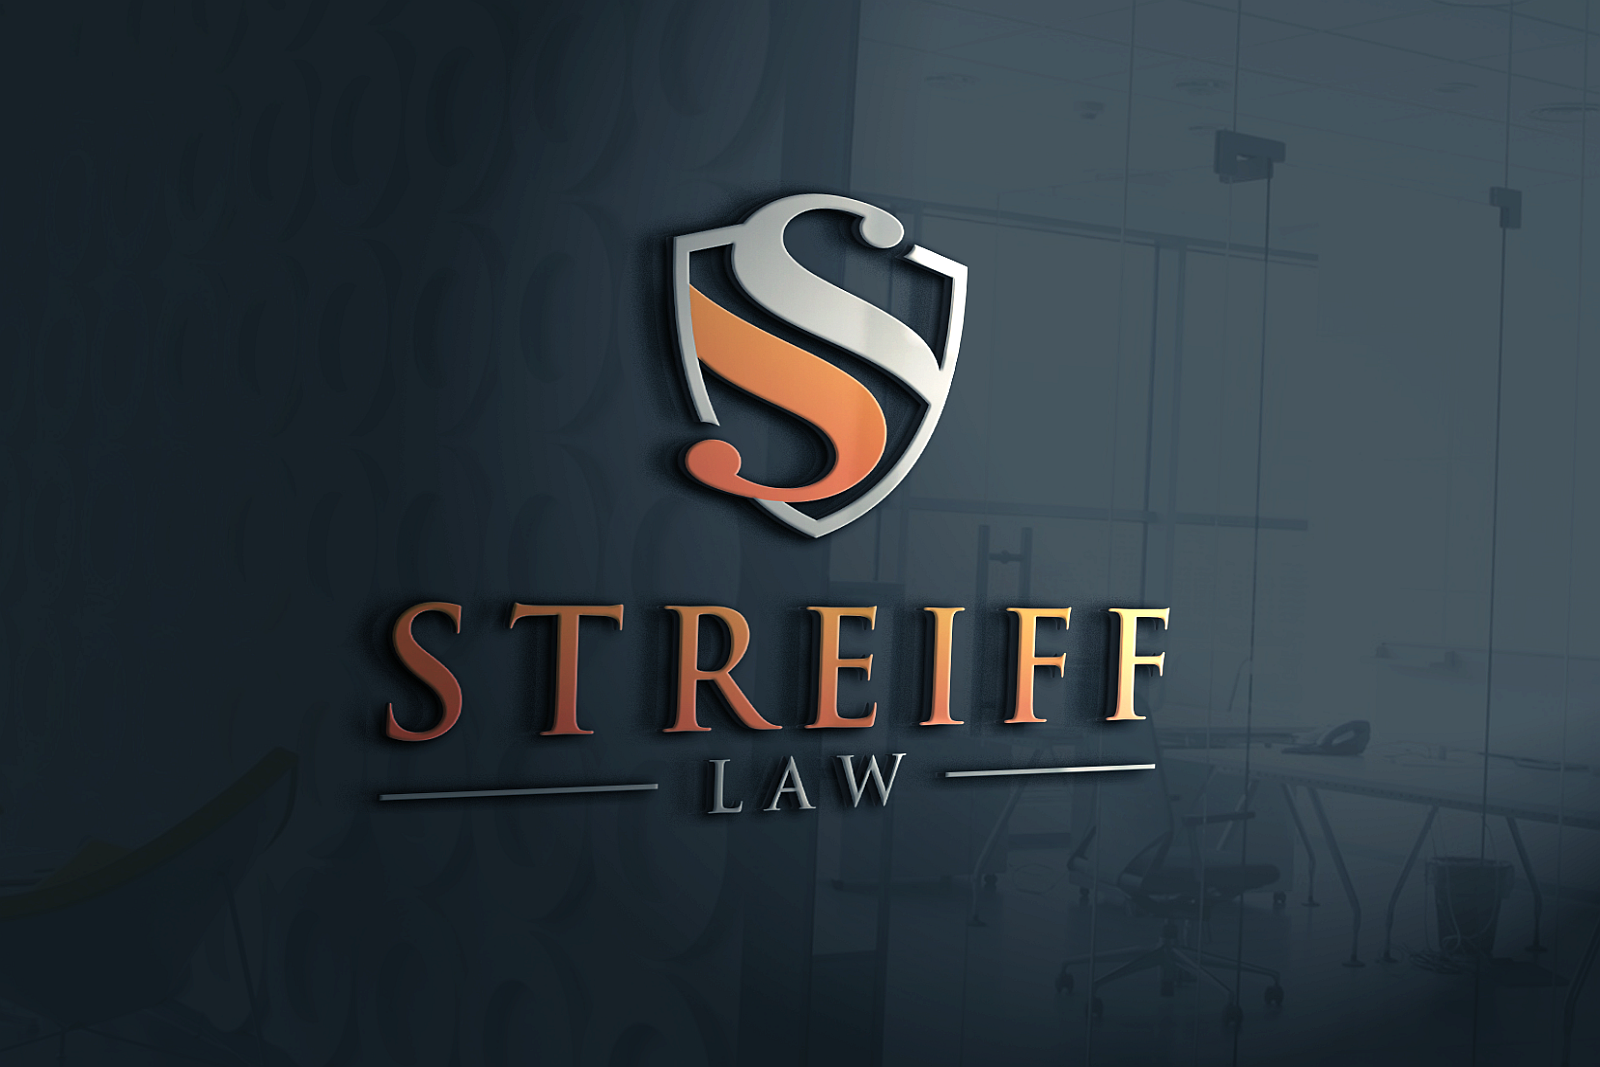 Streiff-Office-Background 3 zu 2